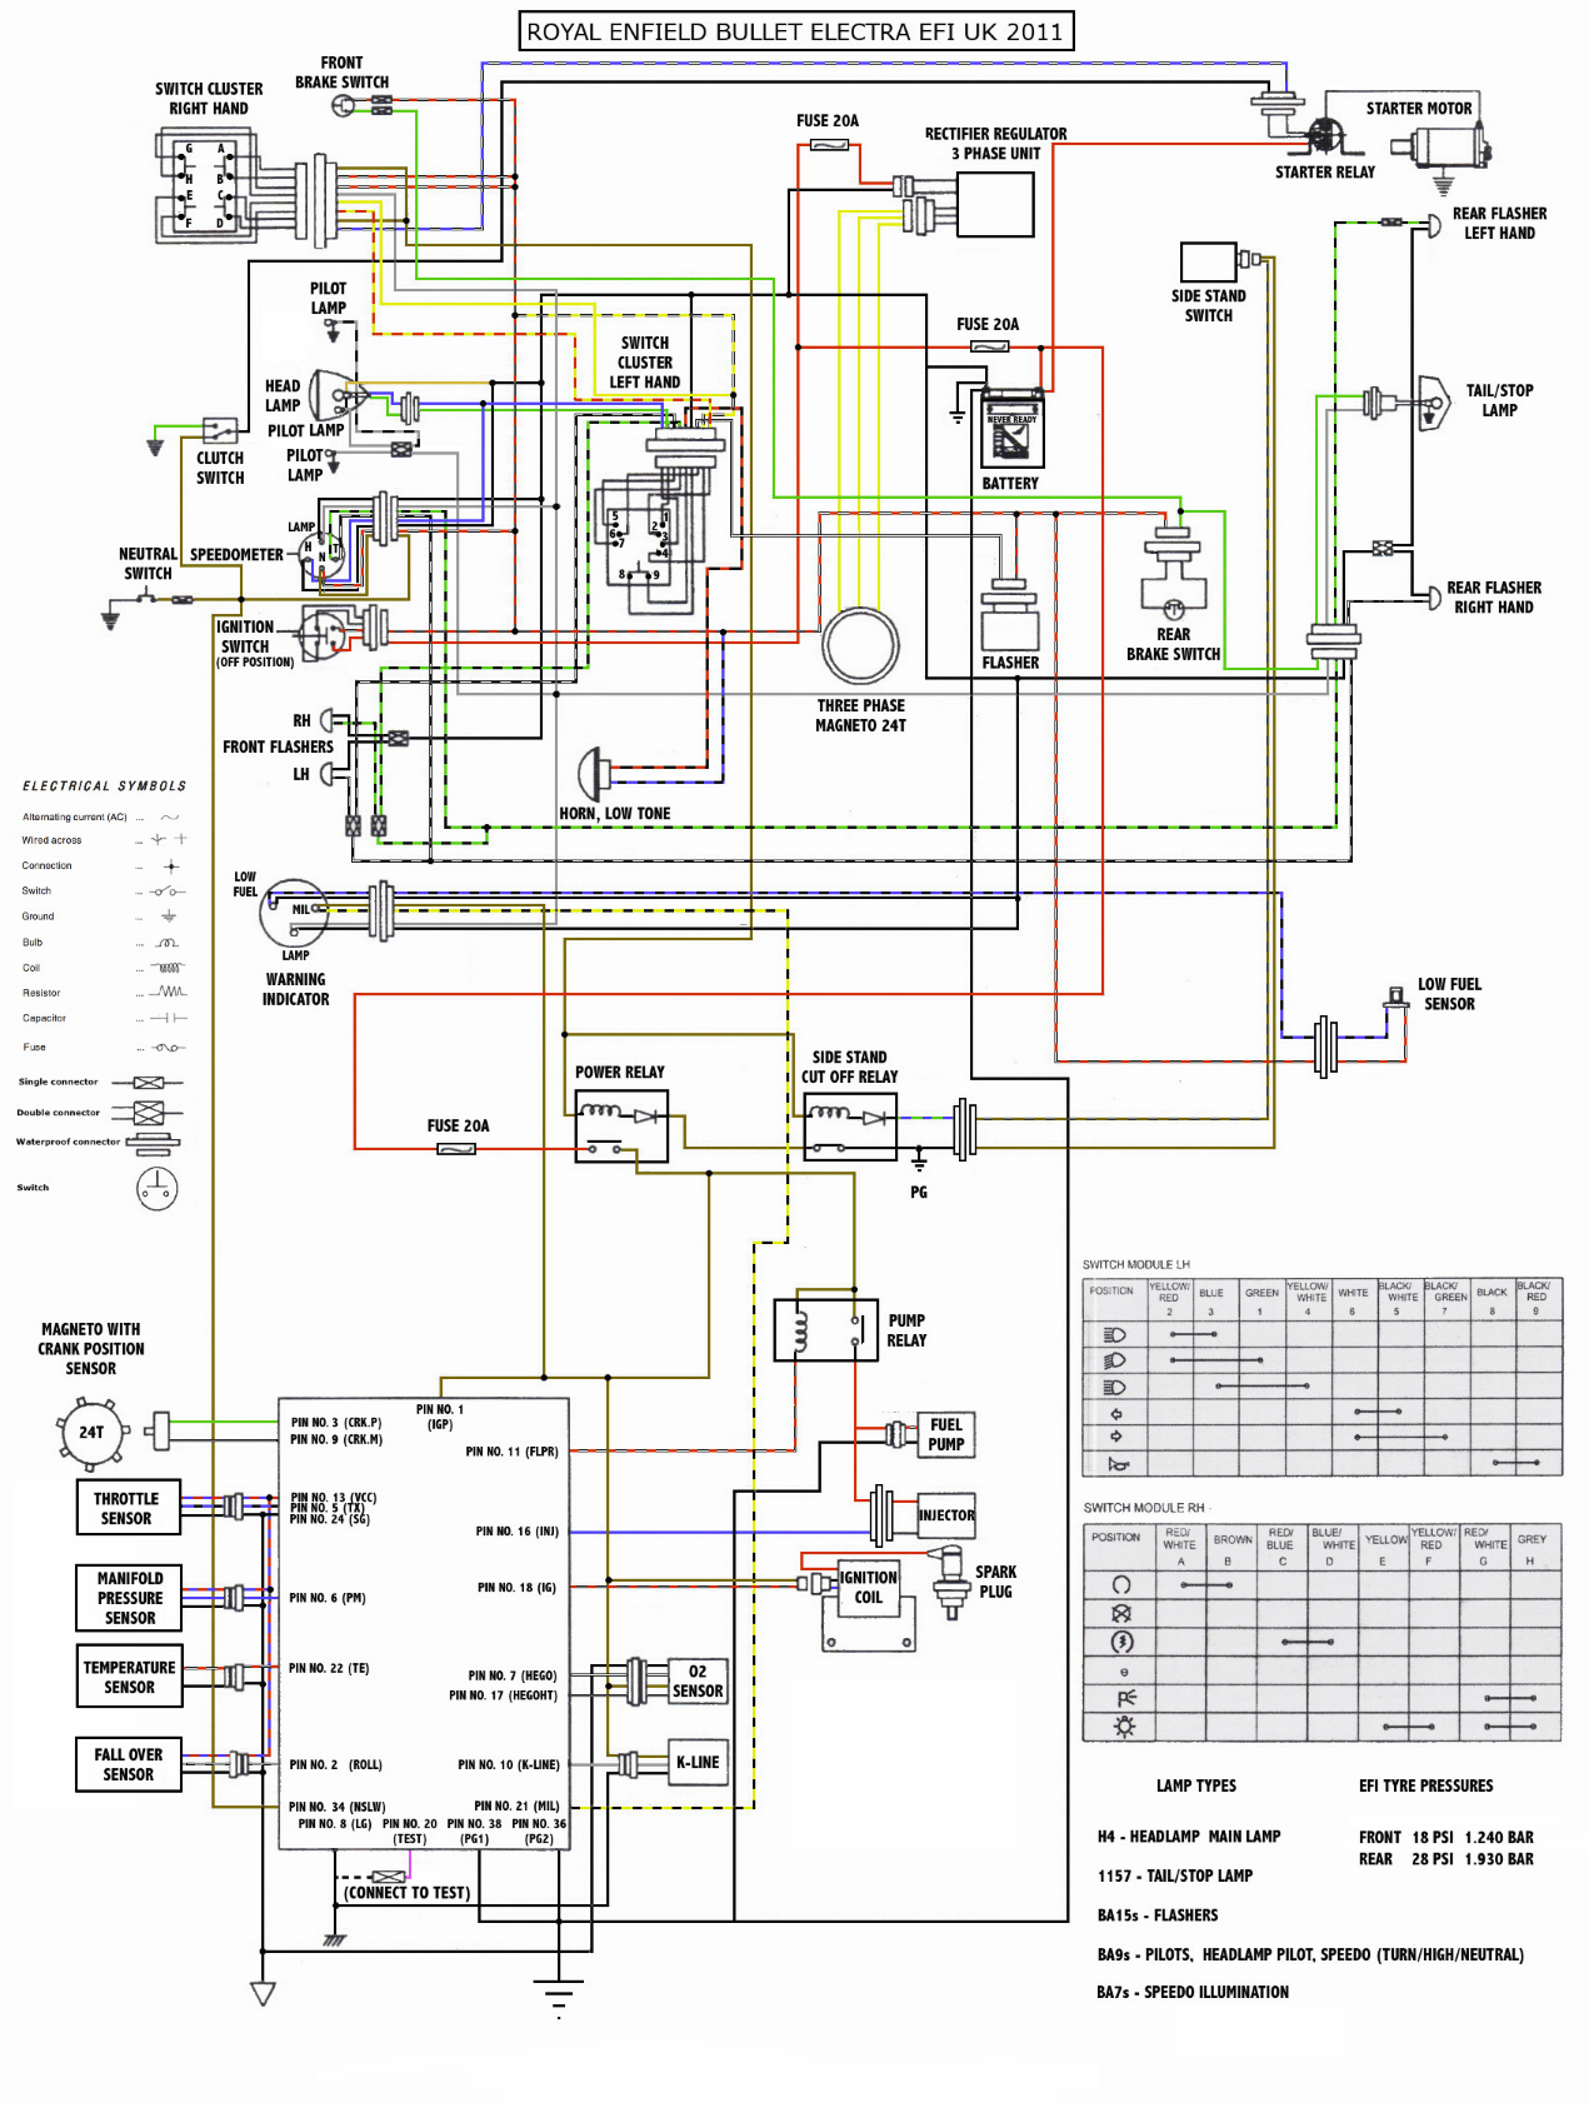 EFI workshop chart royal enfield resources royal enfield wiring diagram free at webbmarketing.co